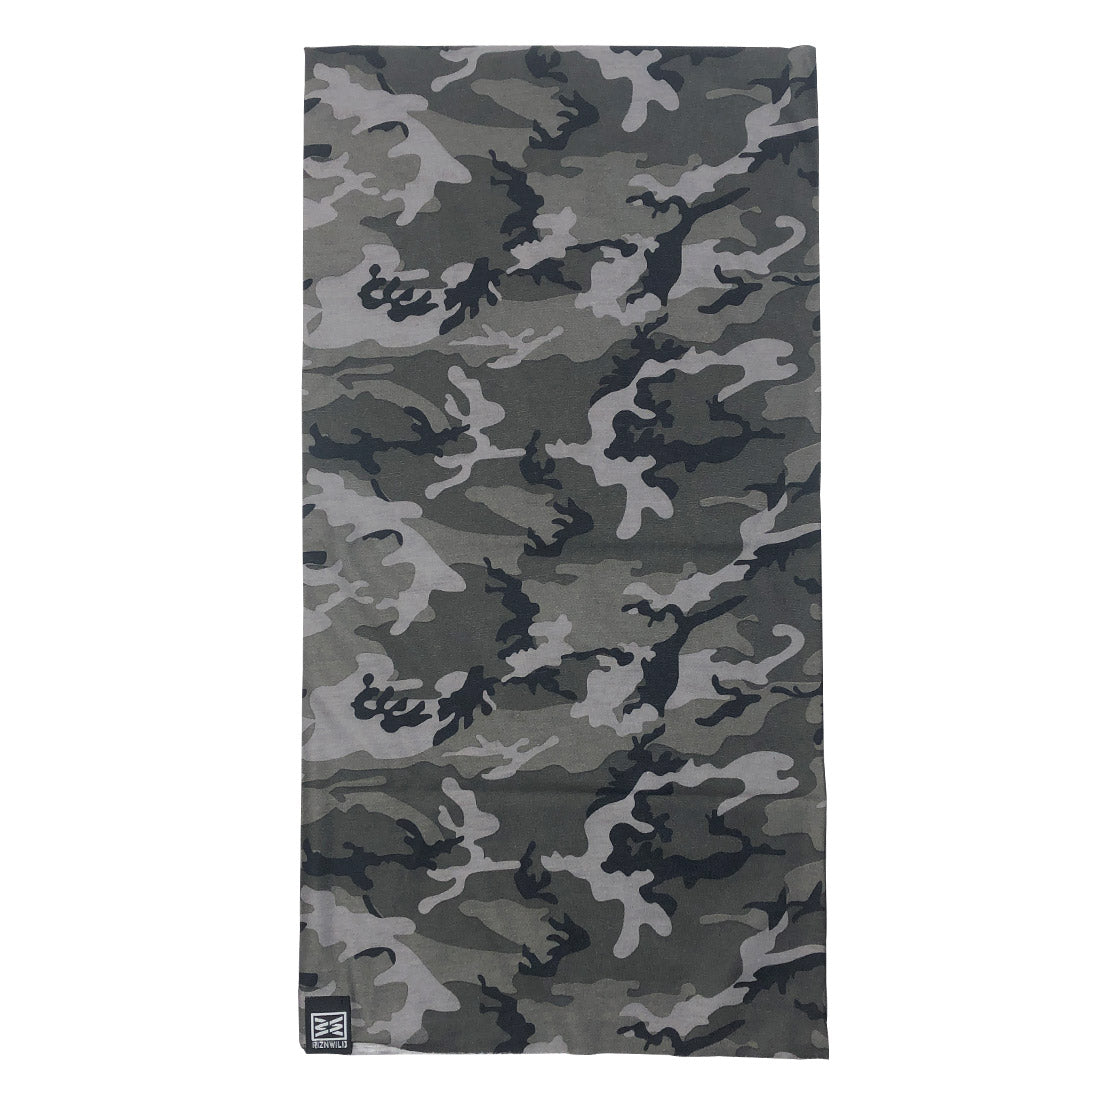 TWISTER GAITER MASK IN GREY CAMO